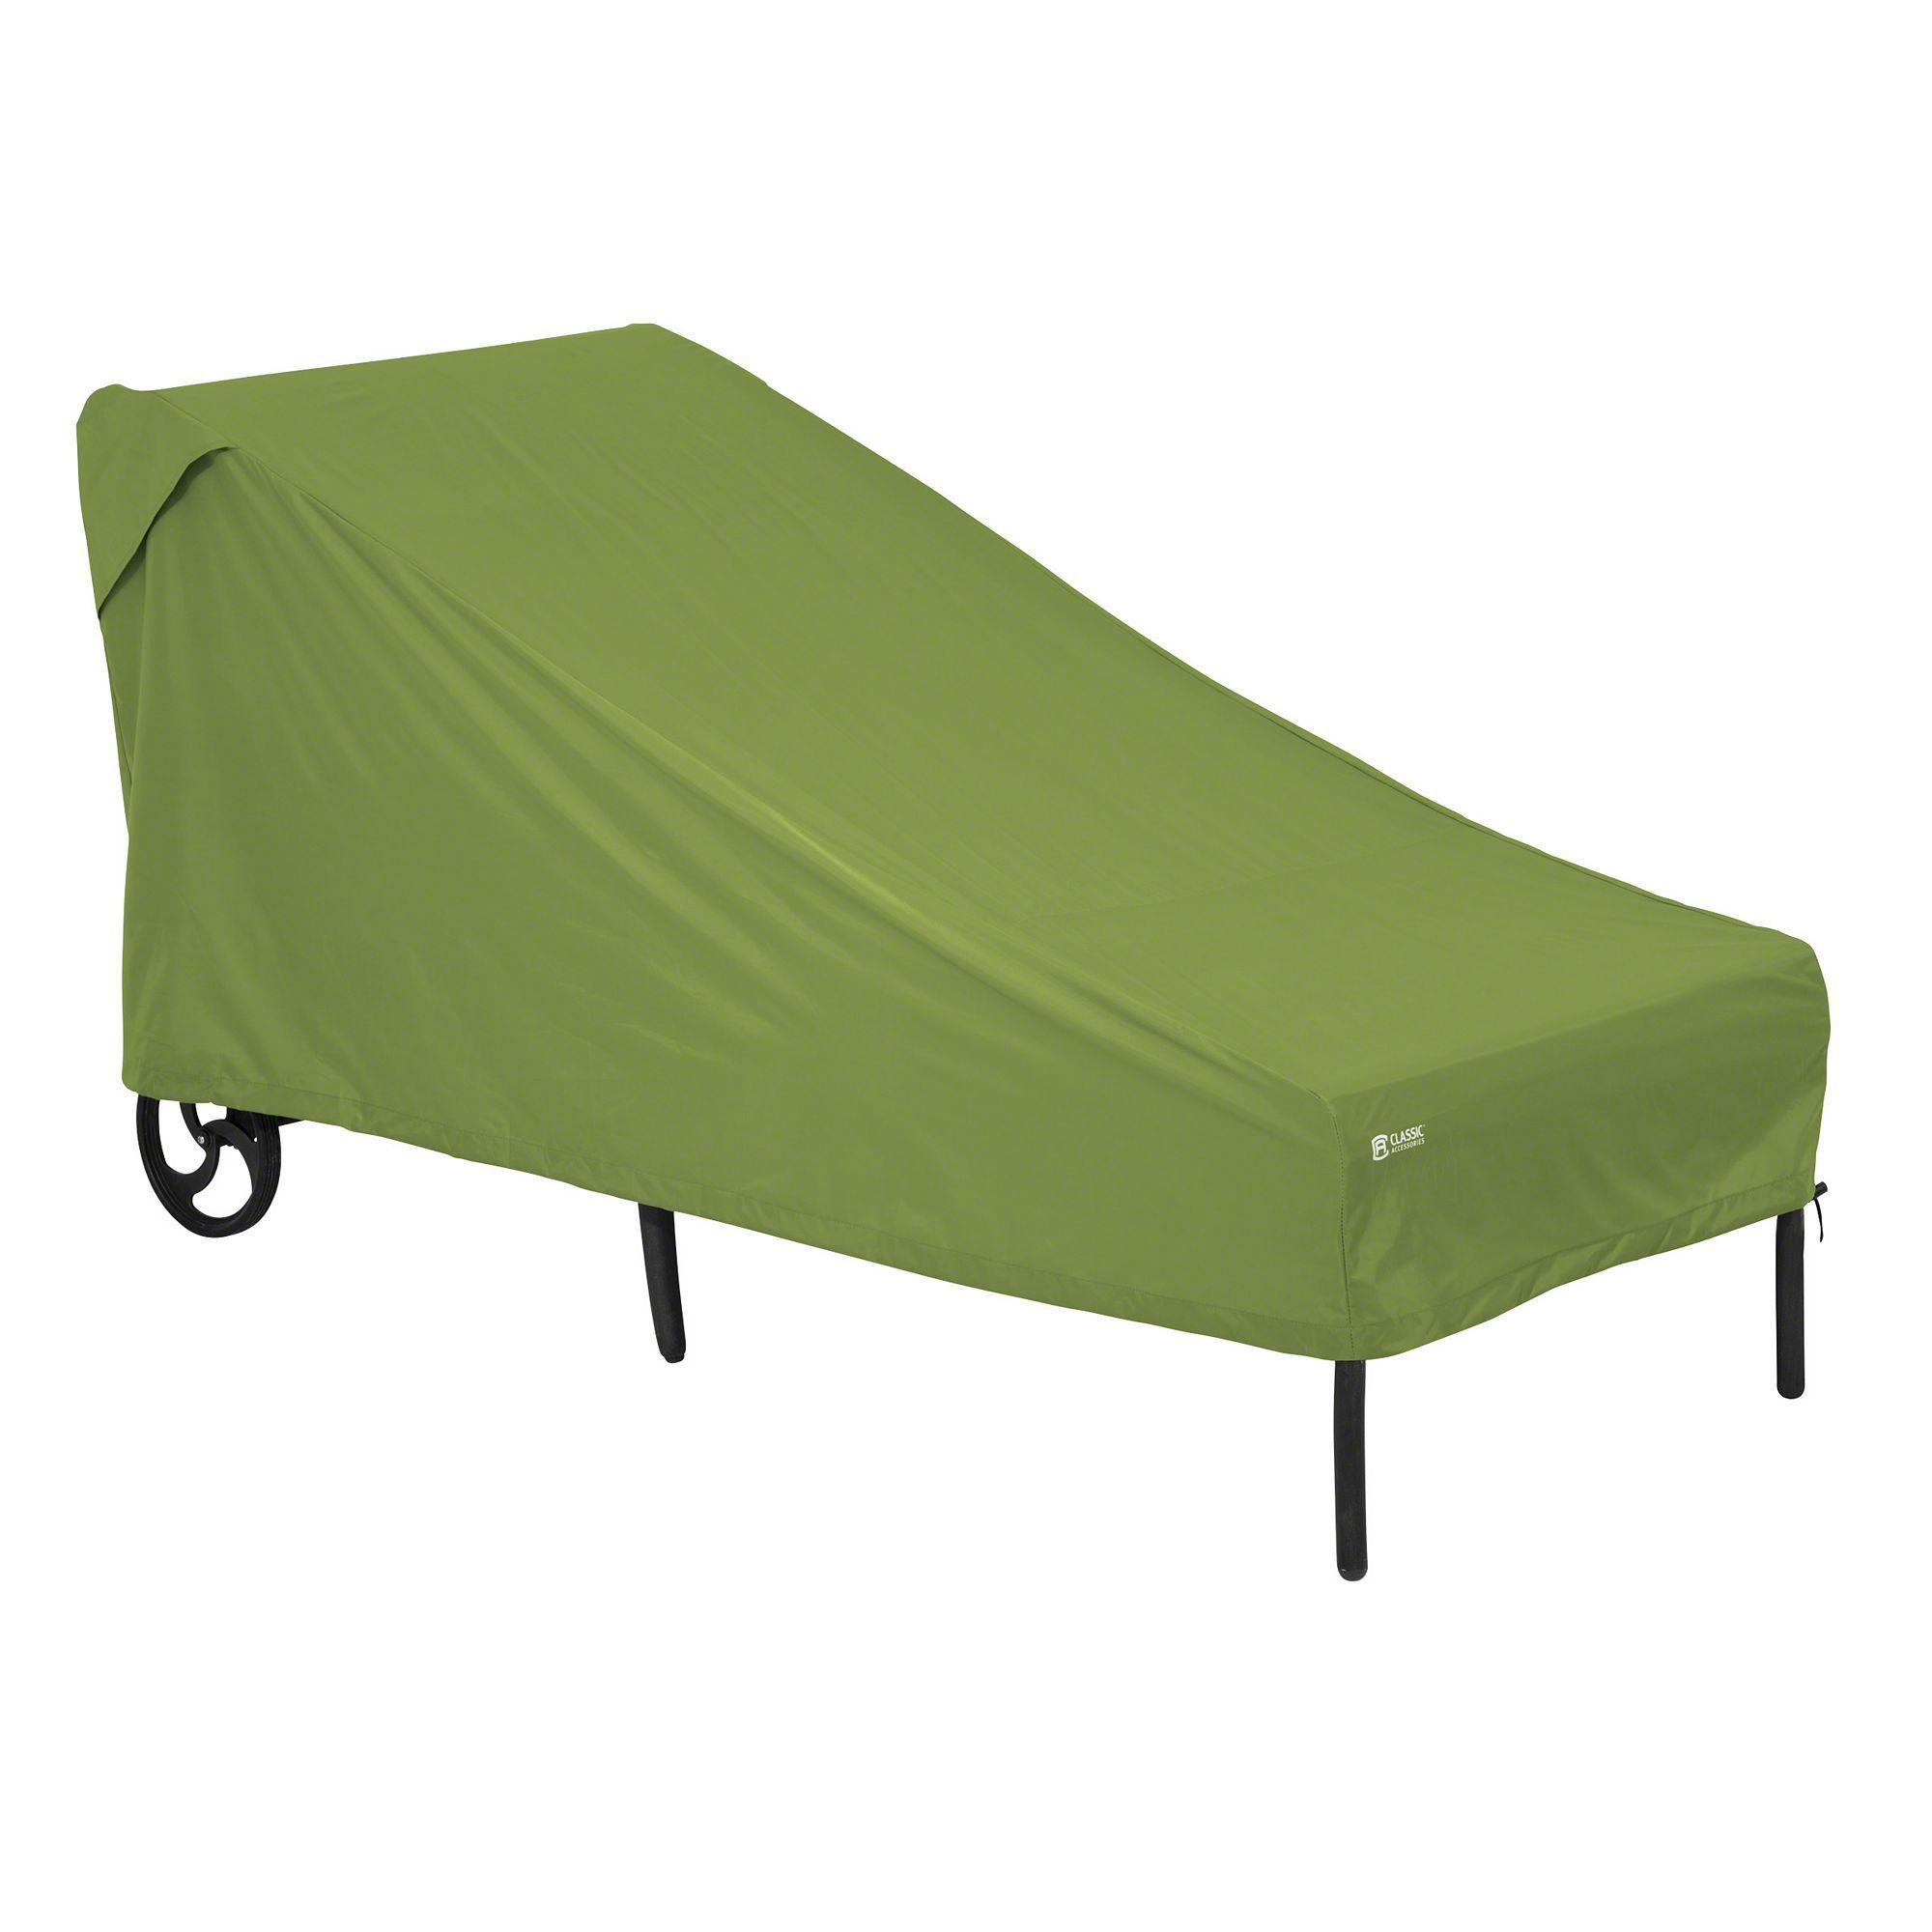 Outdoor classic accessories sodo patio chaise cover green